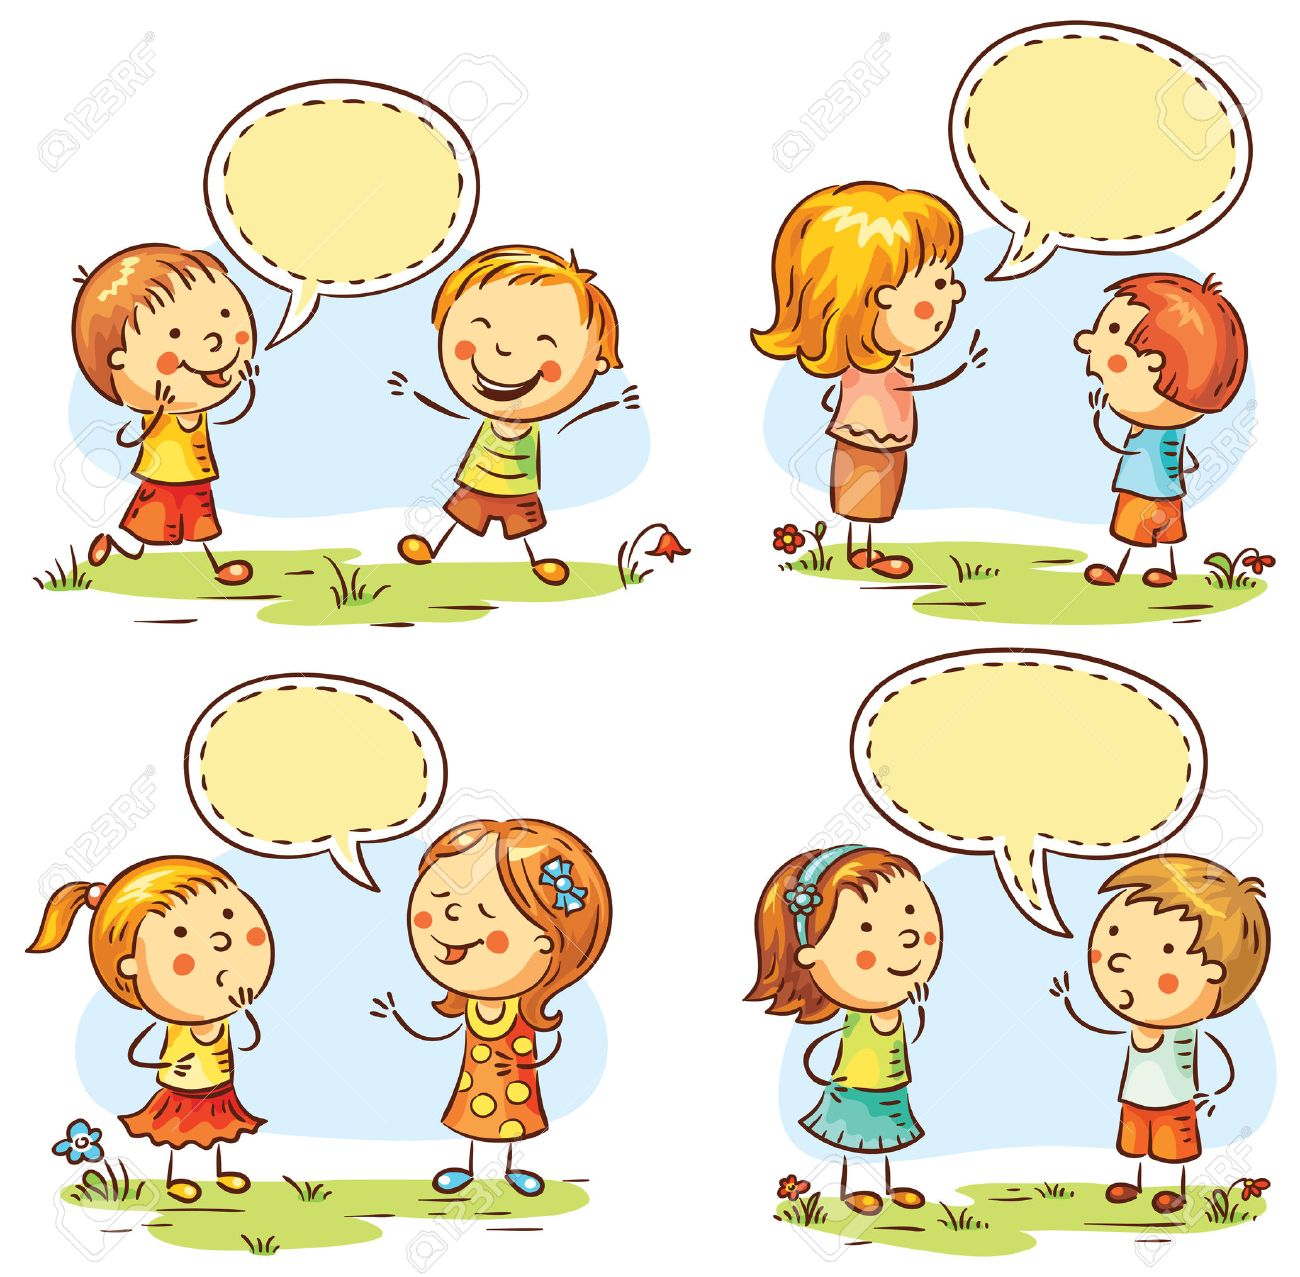 kids talking and showing different emotions, set of four scenes